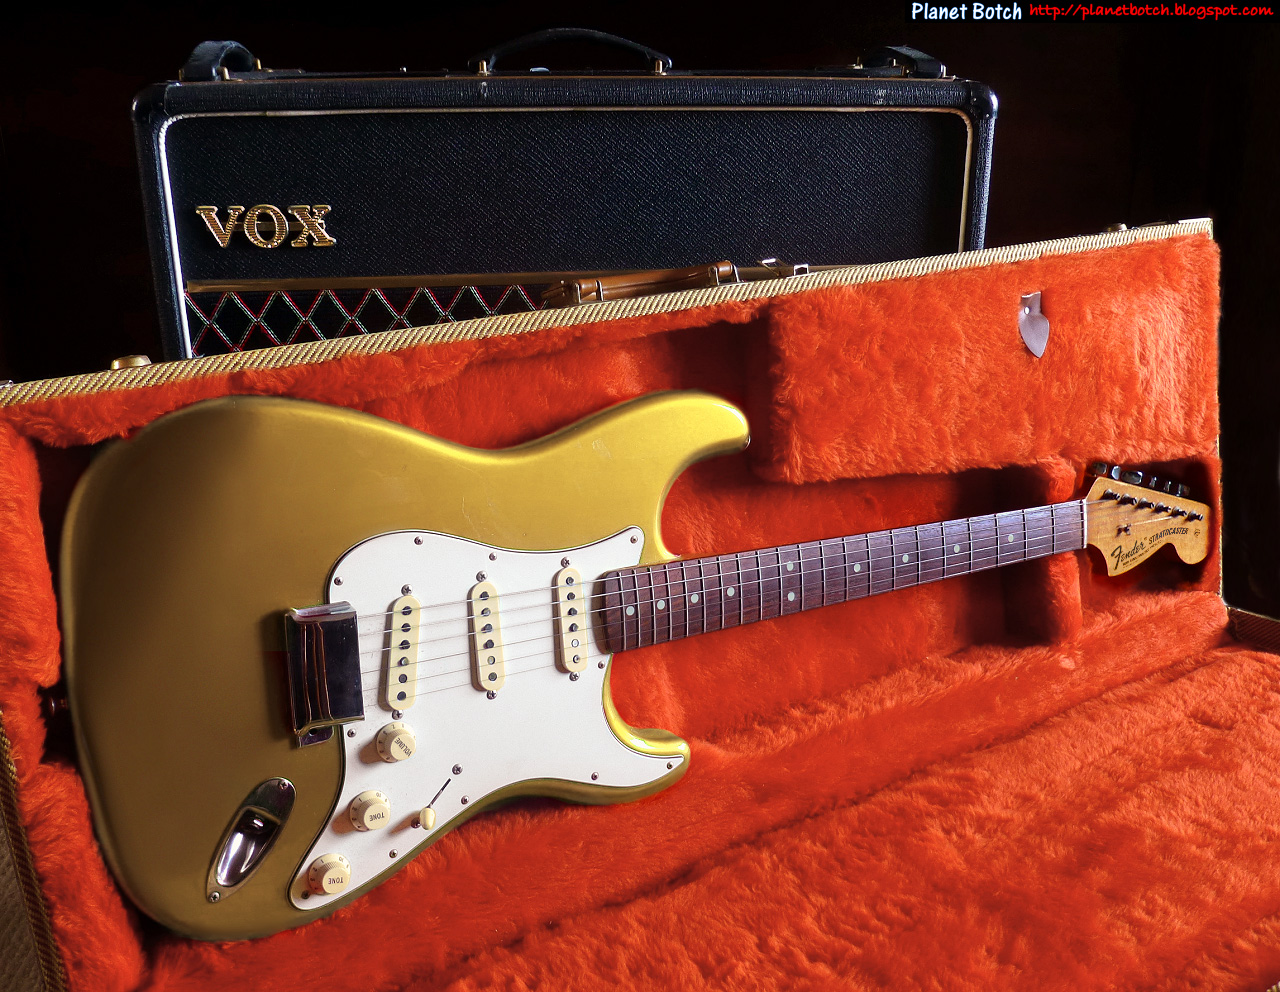 Dating 70s stratocaster reissue reviews